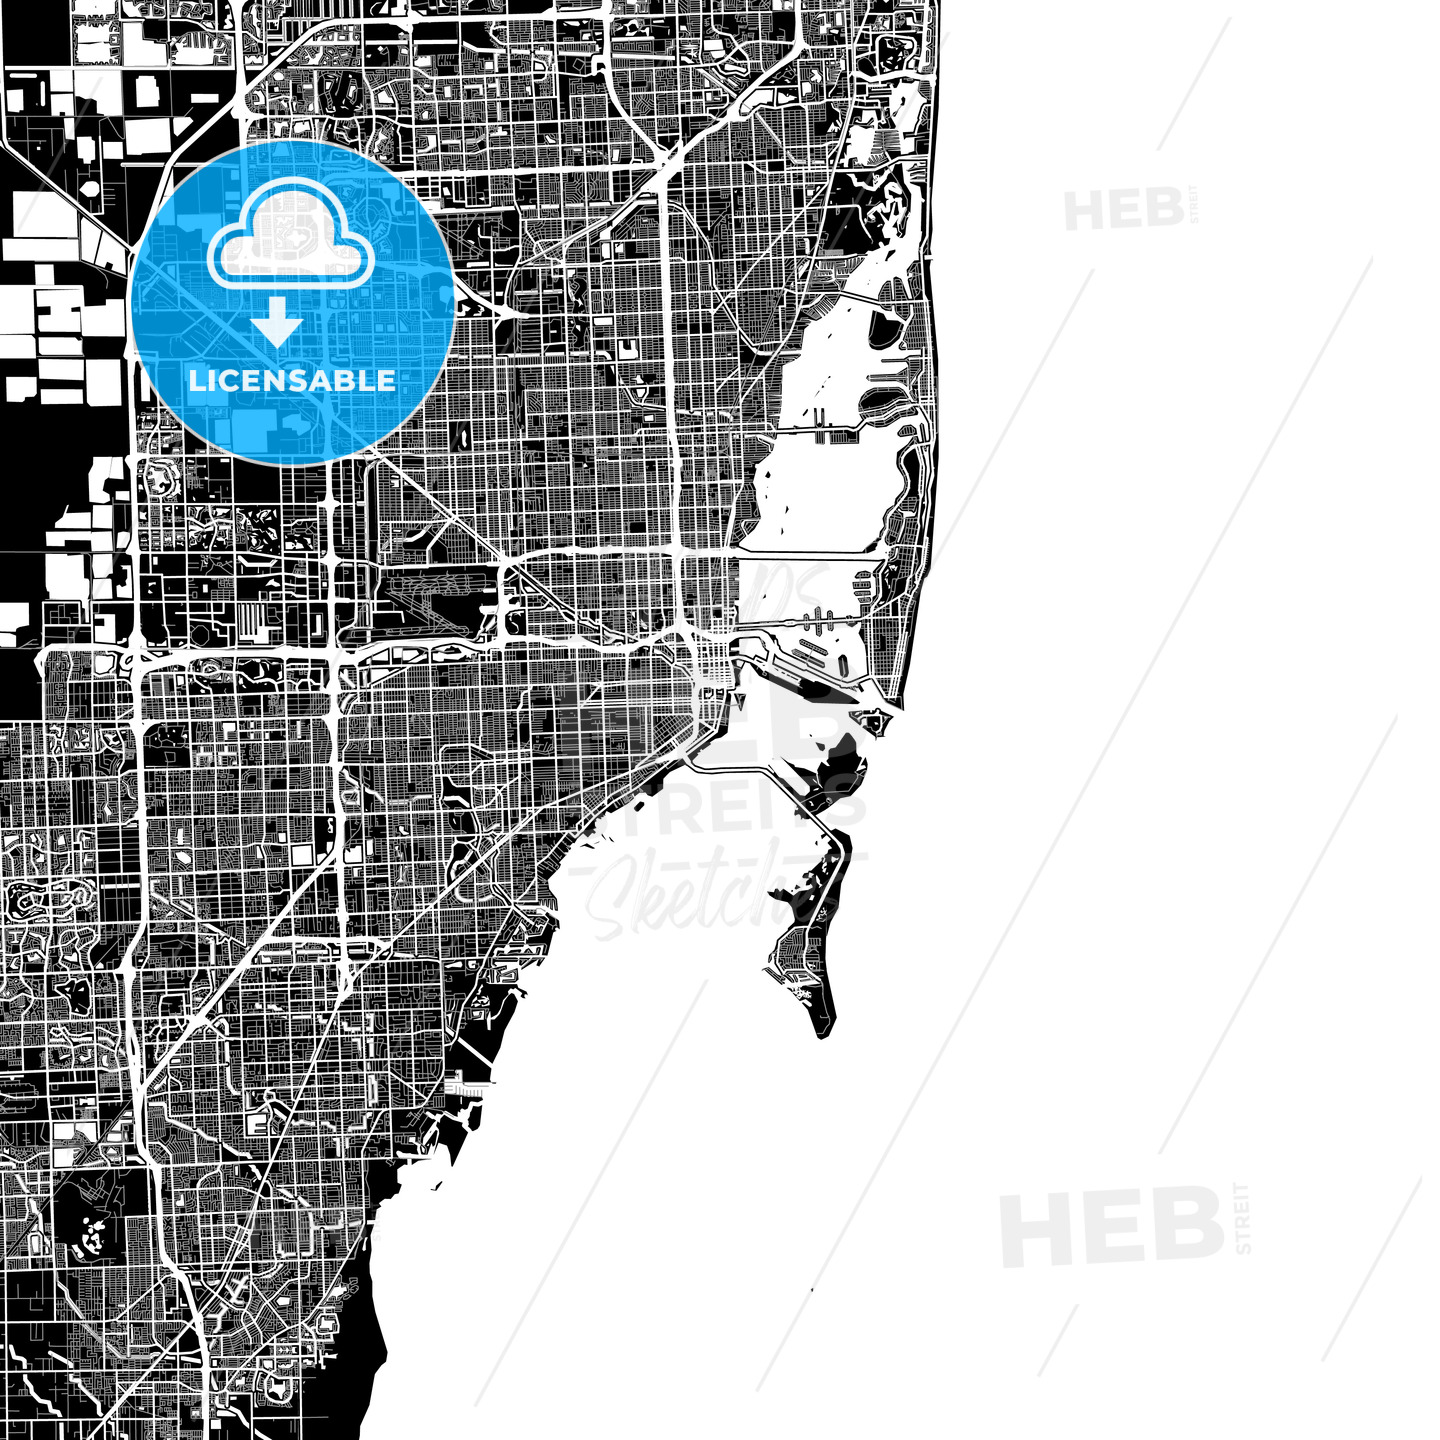 Area map of Miami, USA - HEBSTREITS